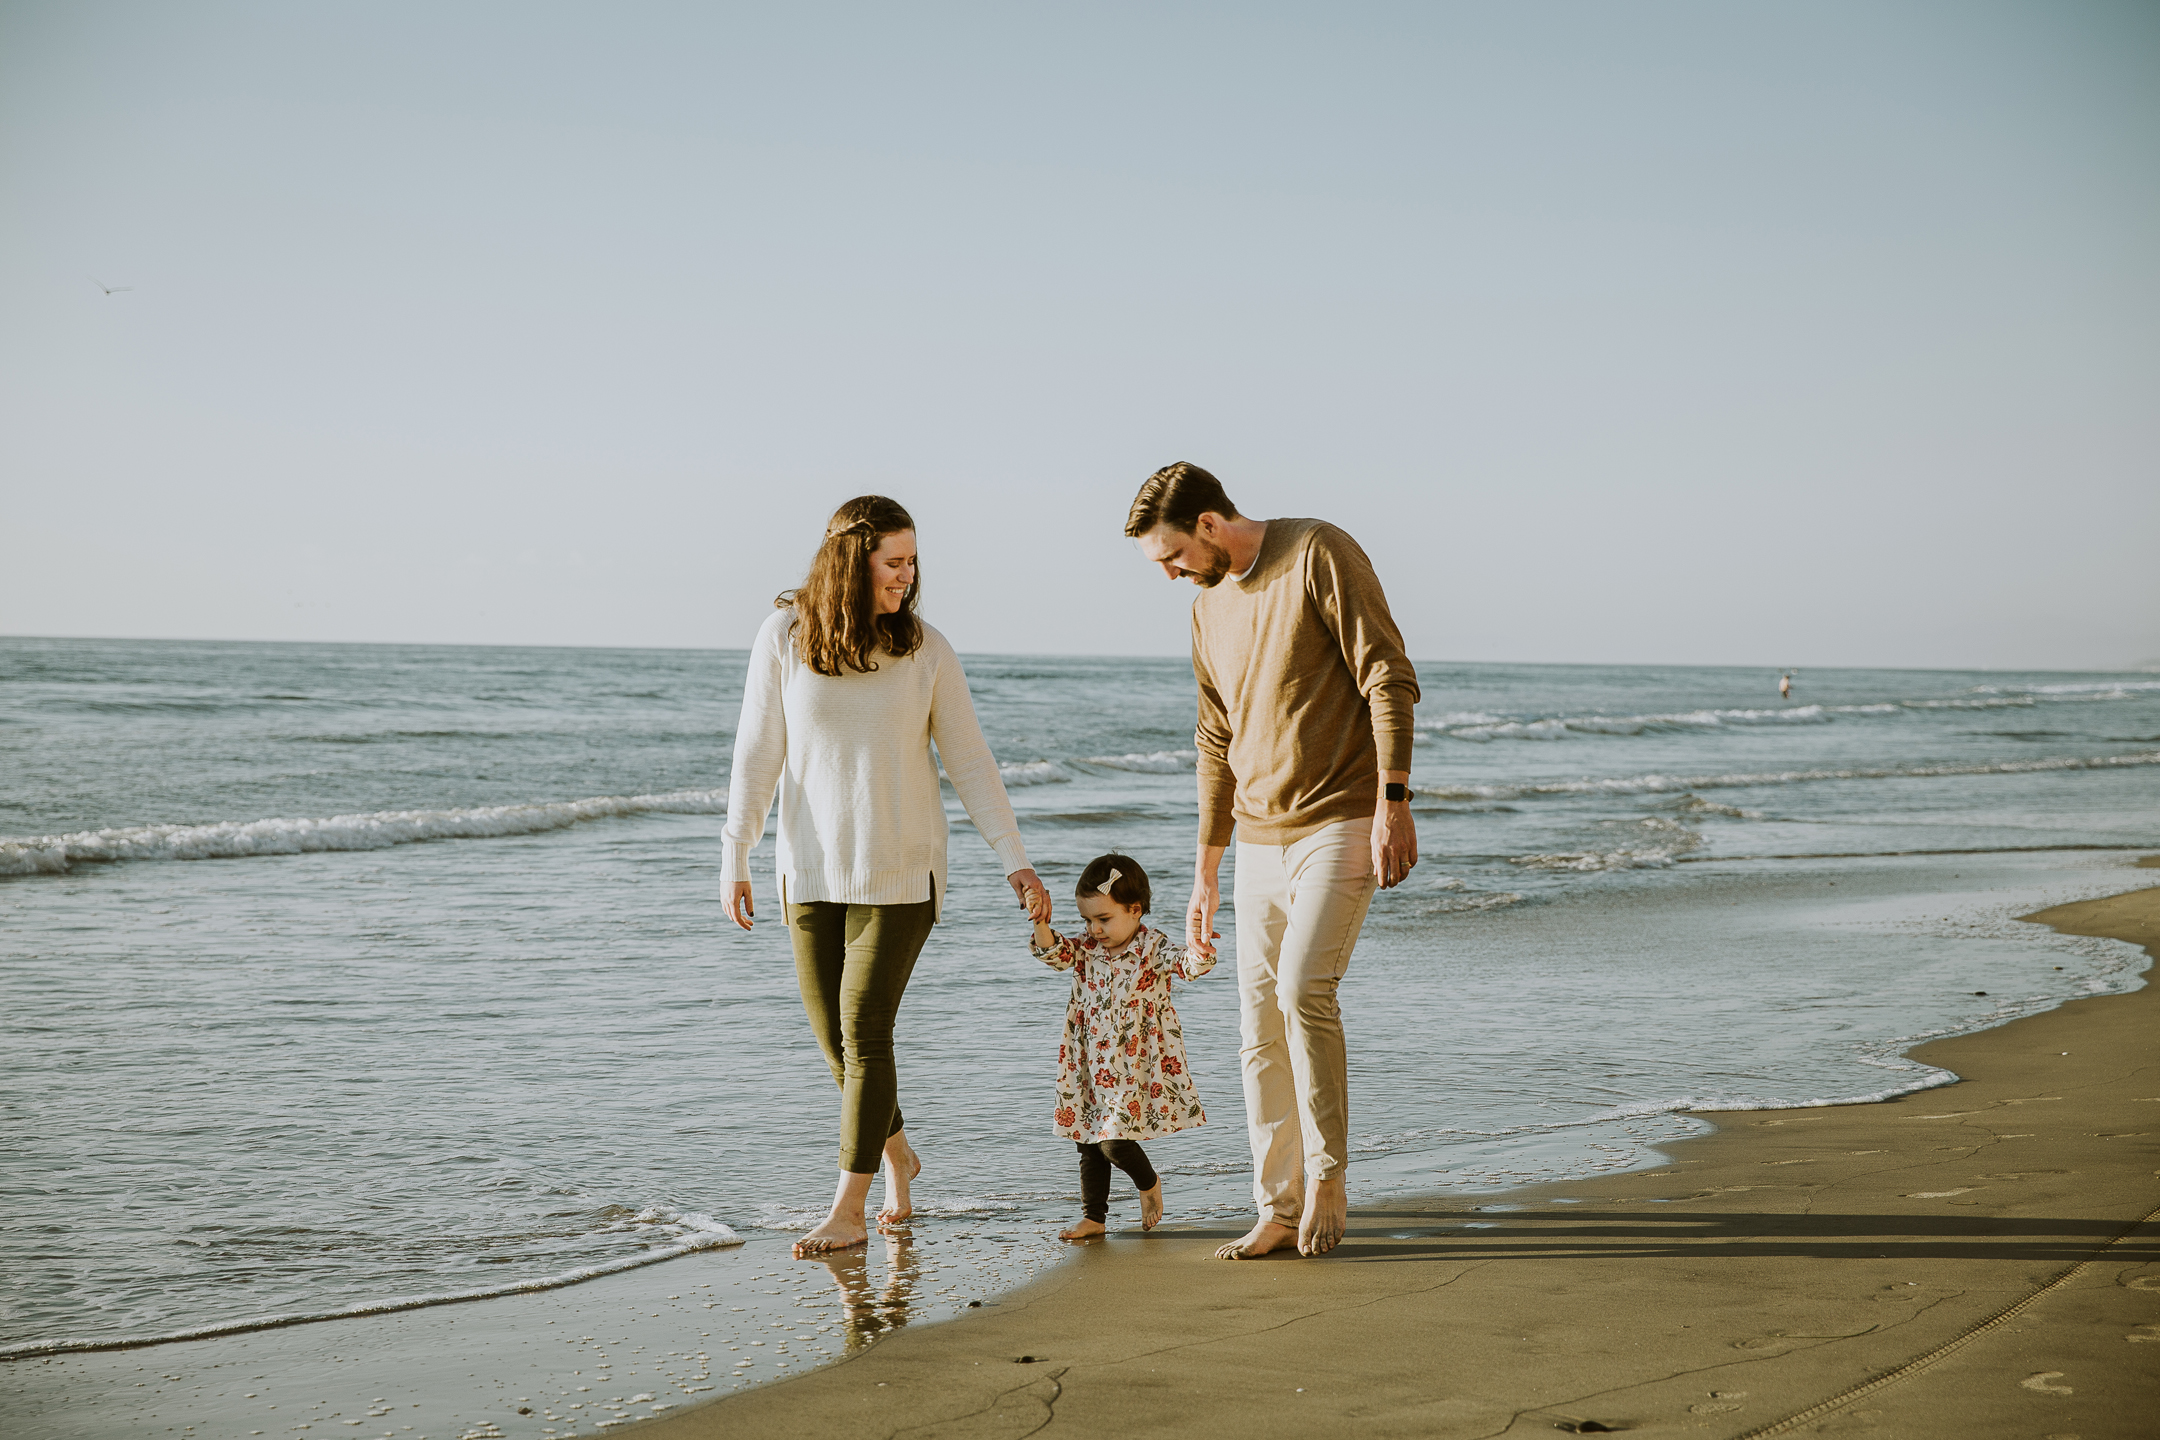 FAMILY photos: Torrey Pines Beach